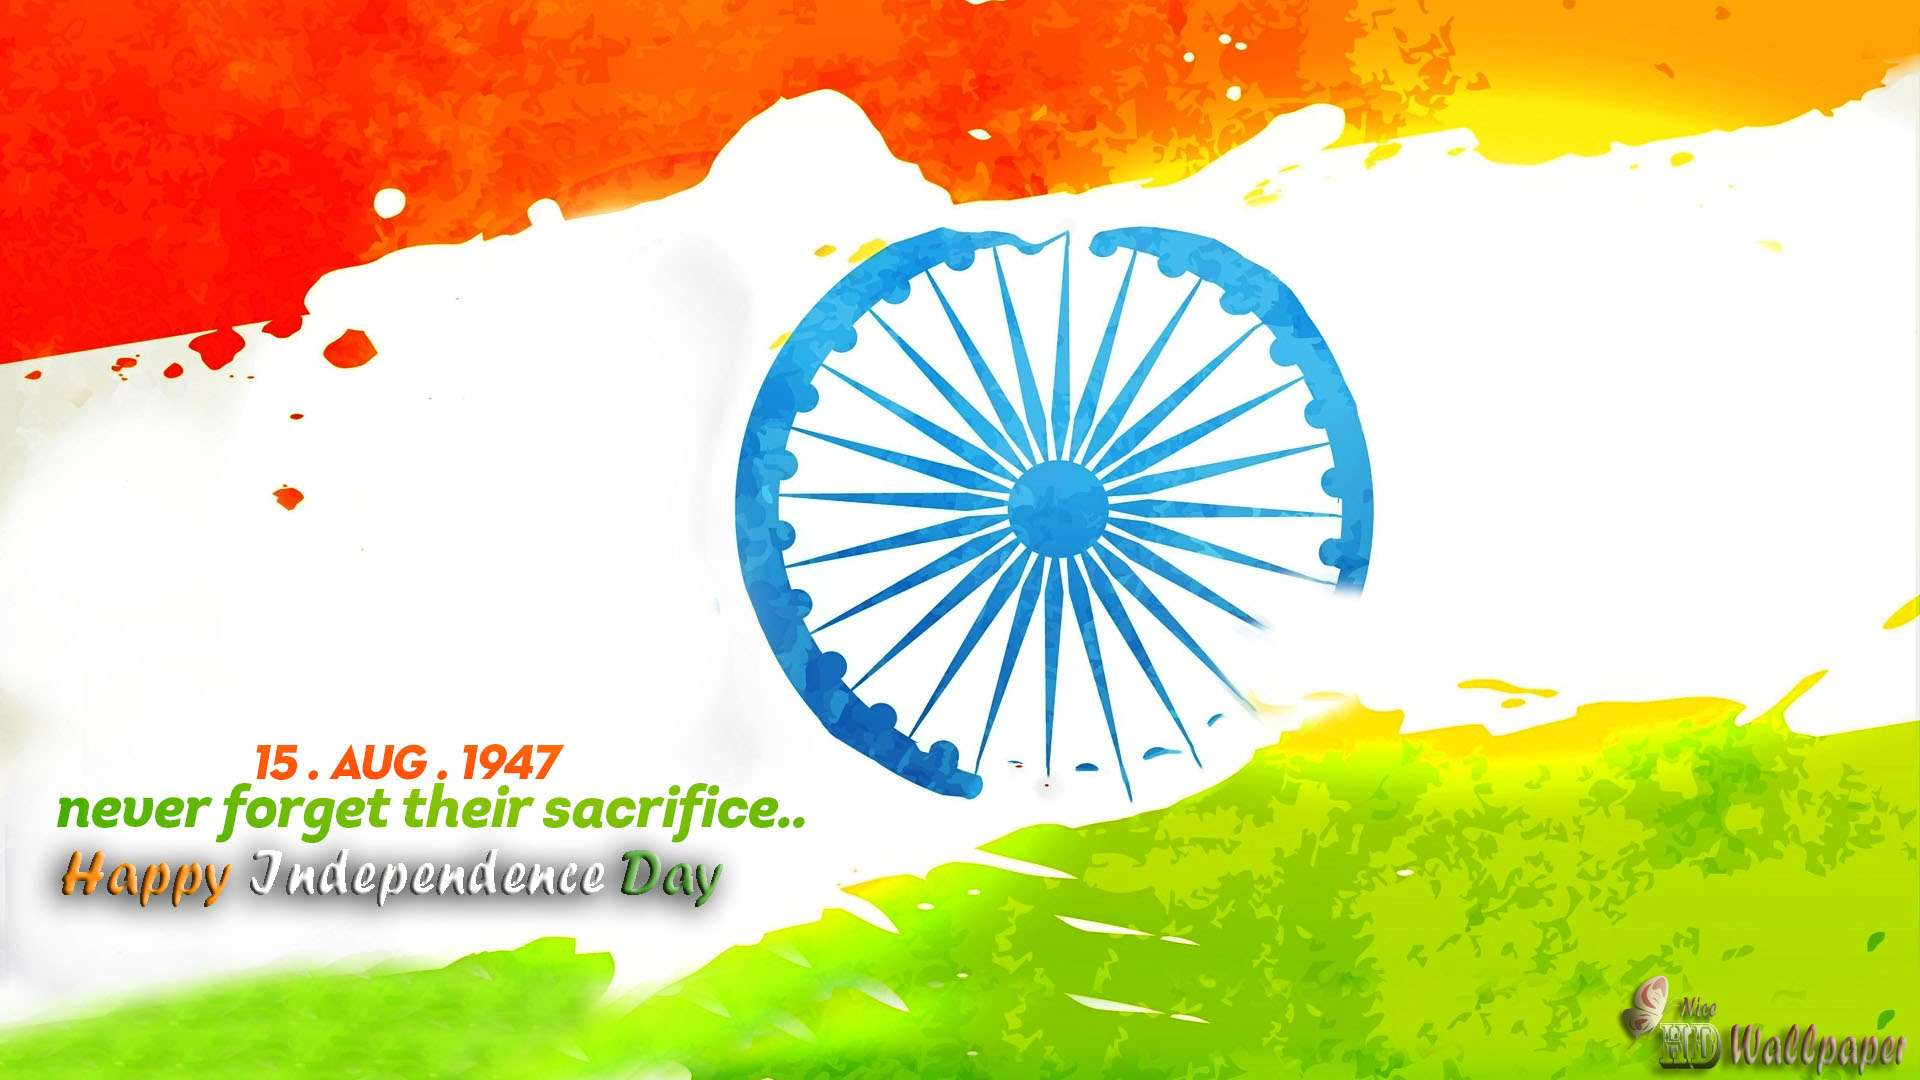 15 augush 1947 happy independence day hd wallpaperjpg 1920x1080